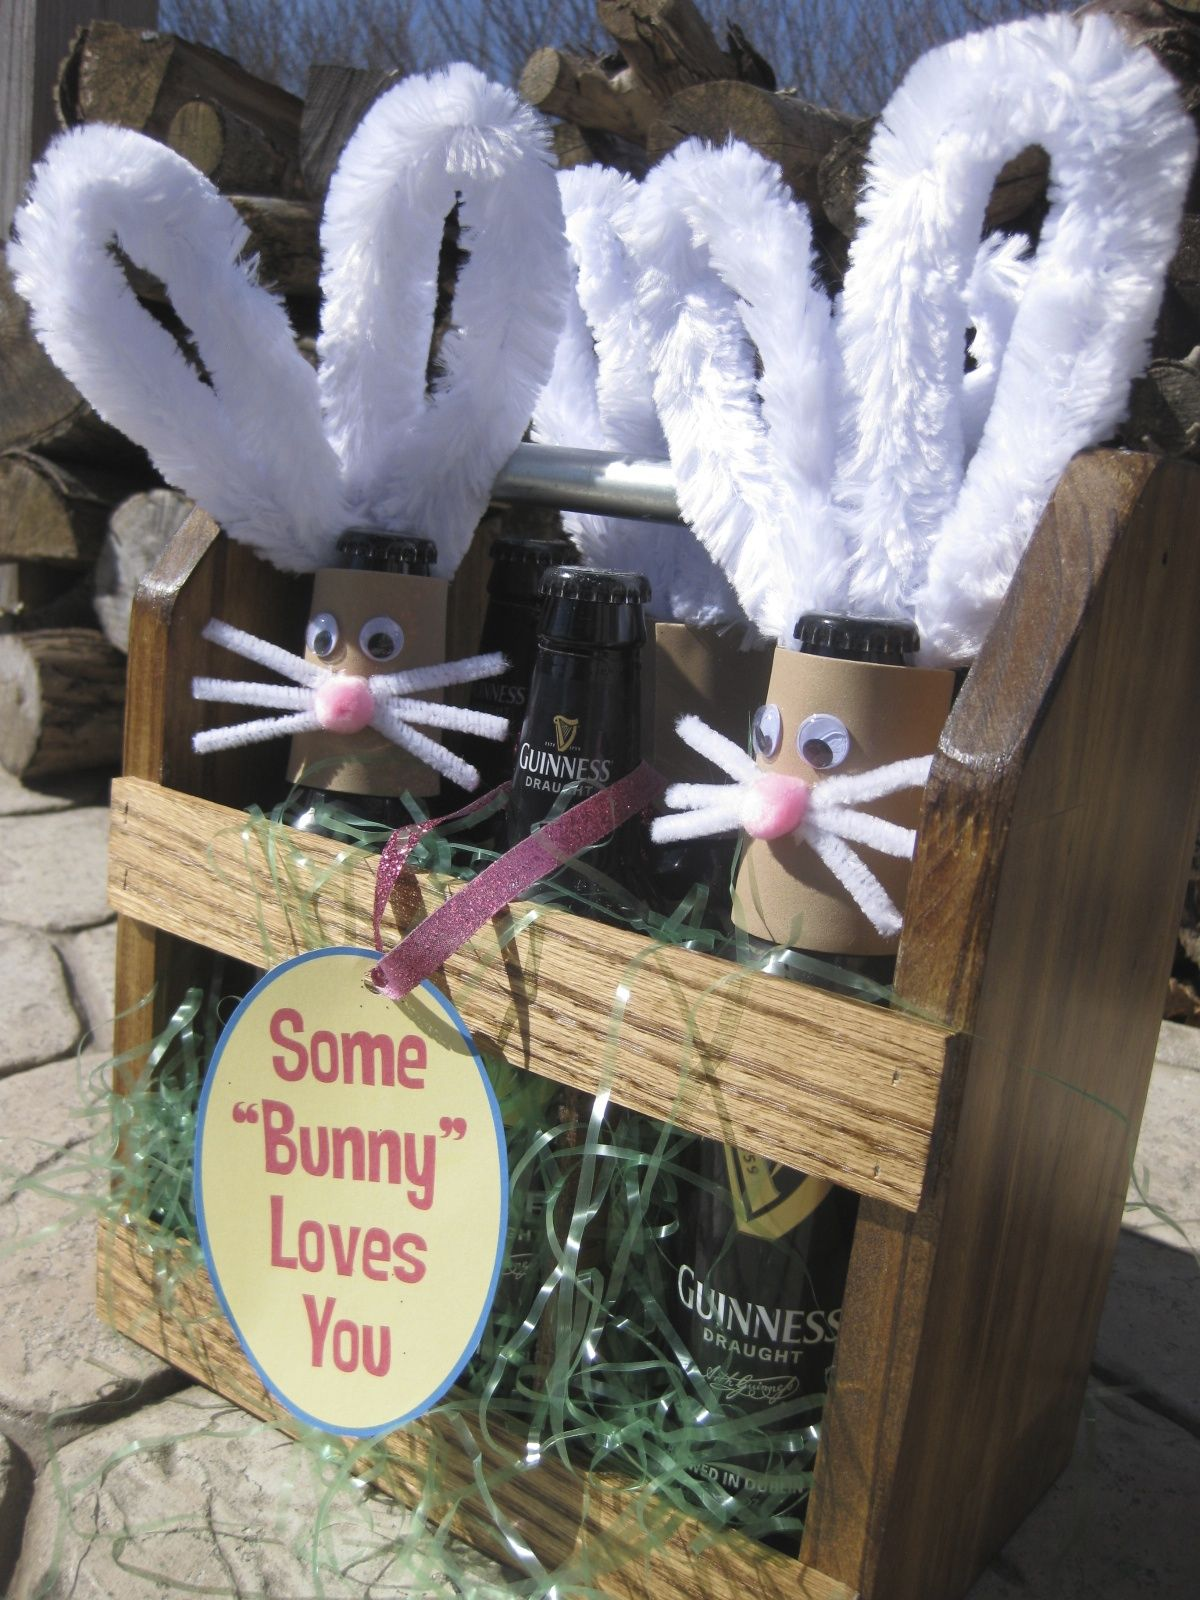 Adorable adult easter basket holiday gift ideas pinterest awesome diy spring hostess gift adorable adult easter basket bunny rabbit beer carrier at etsy or mini wine bottle carrier negle